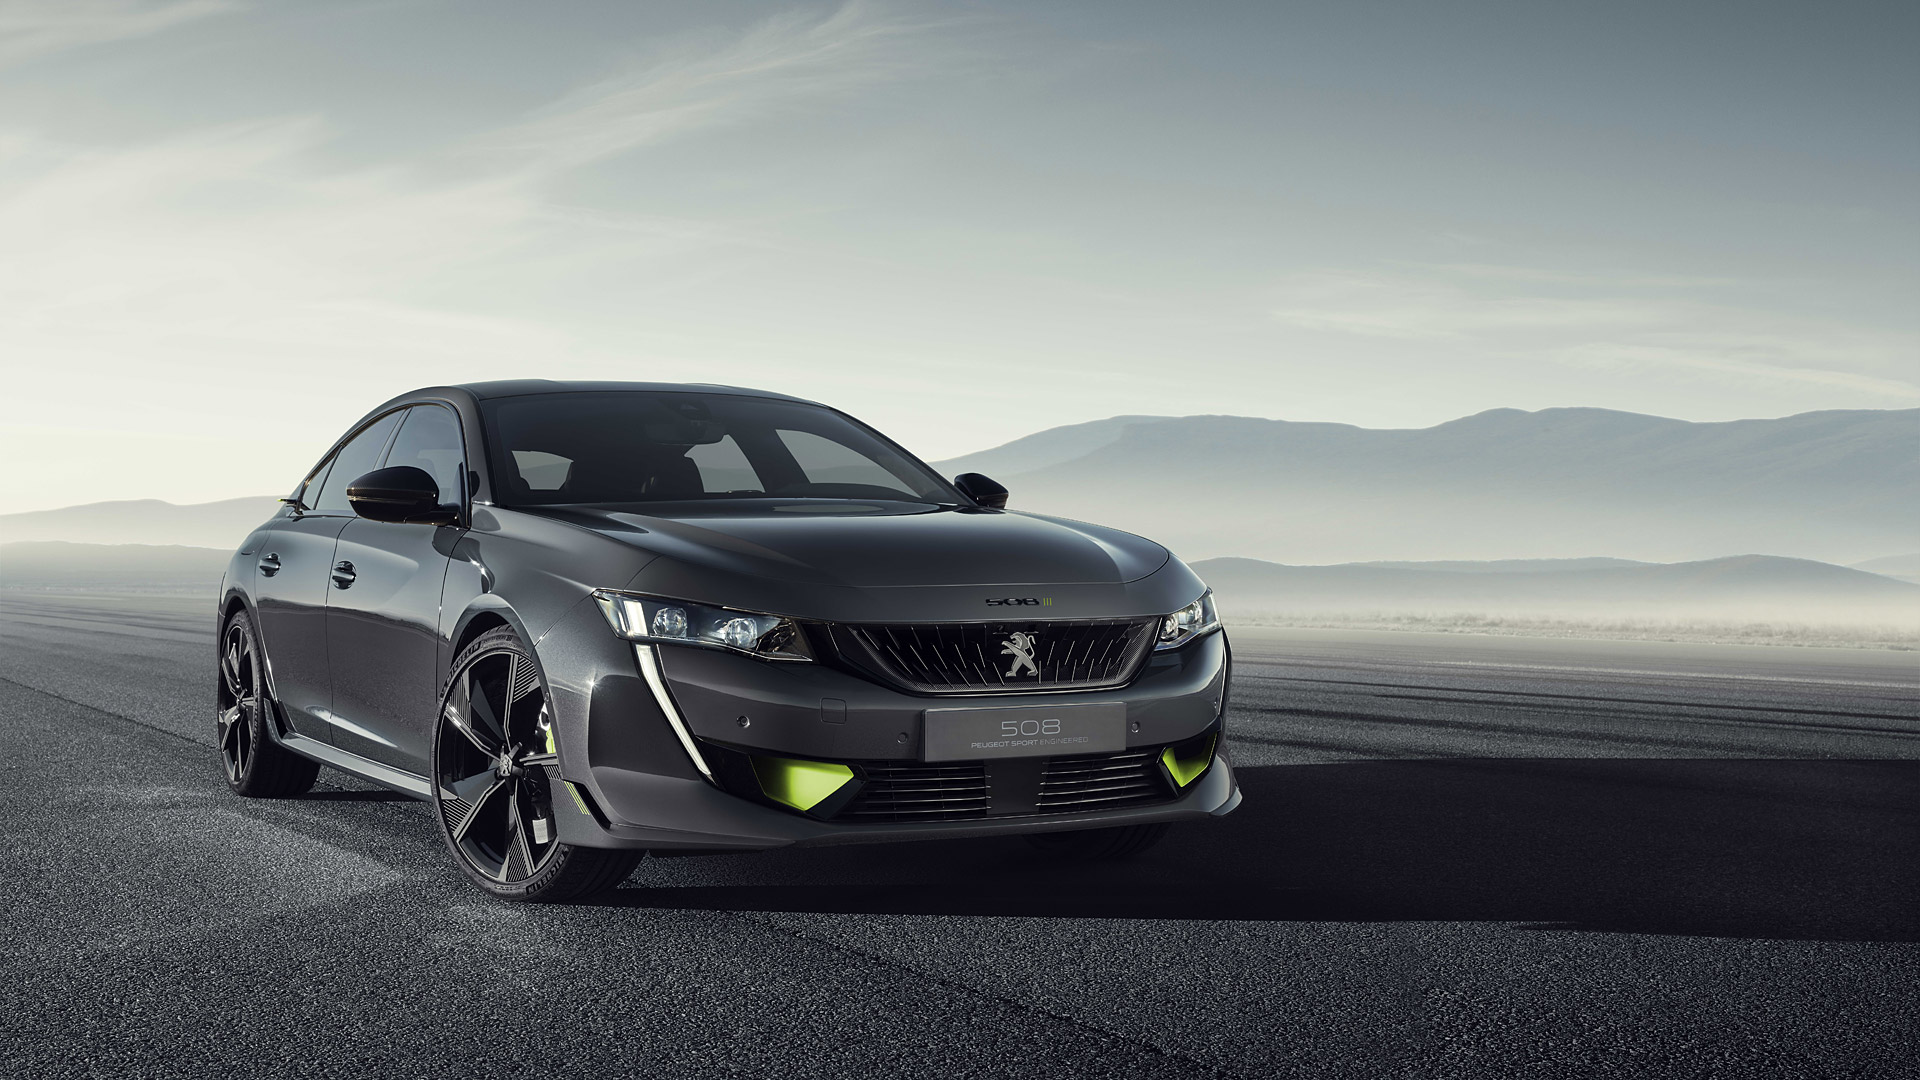 2019 Peugeot 508 Sport Engineered Concept Wallpapers HD Images 1920x1080